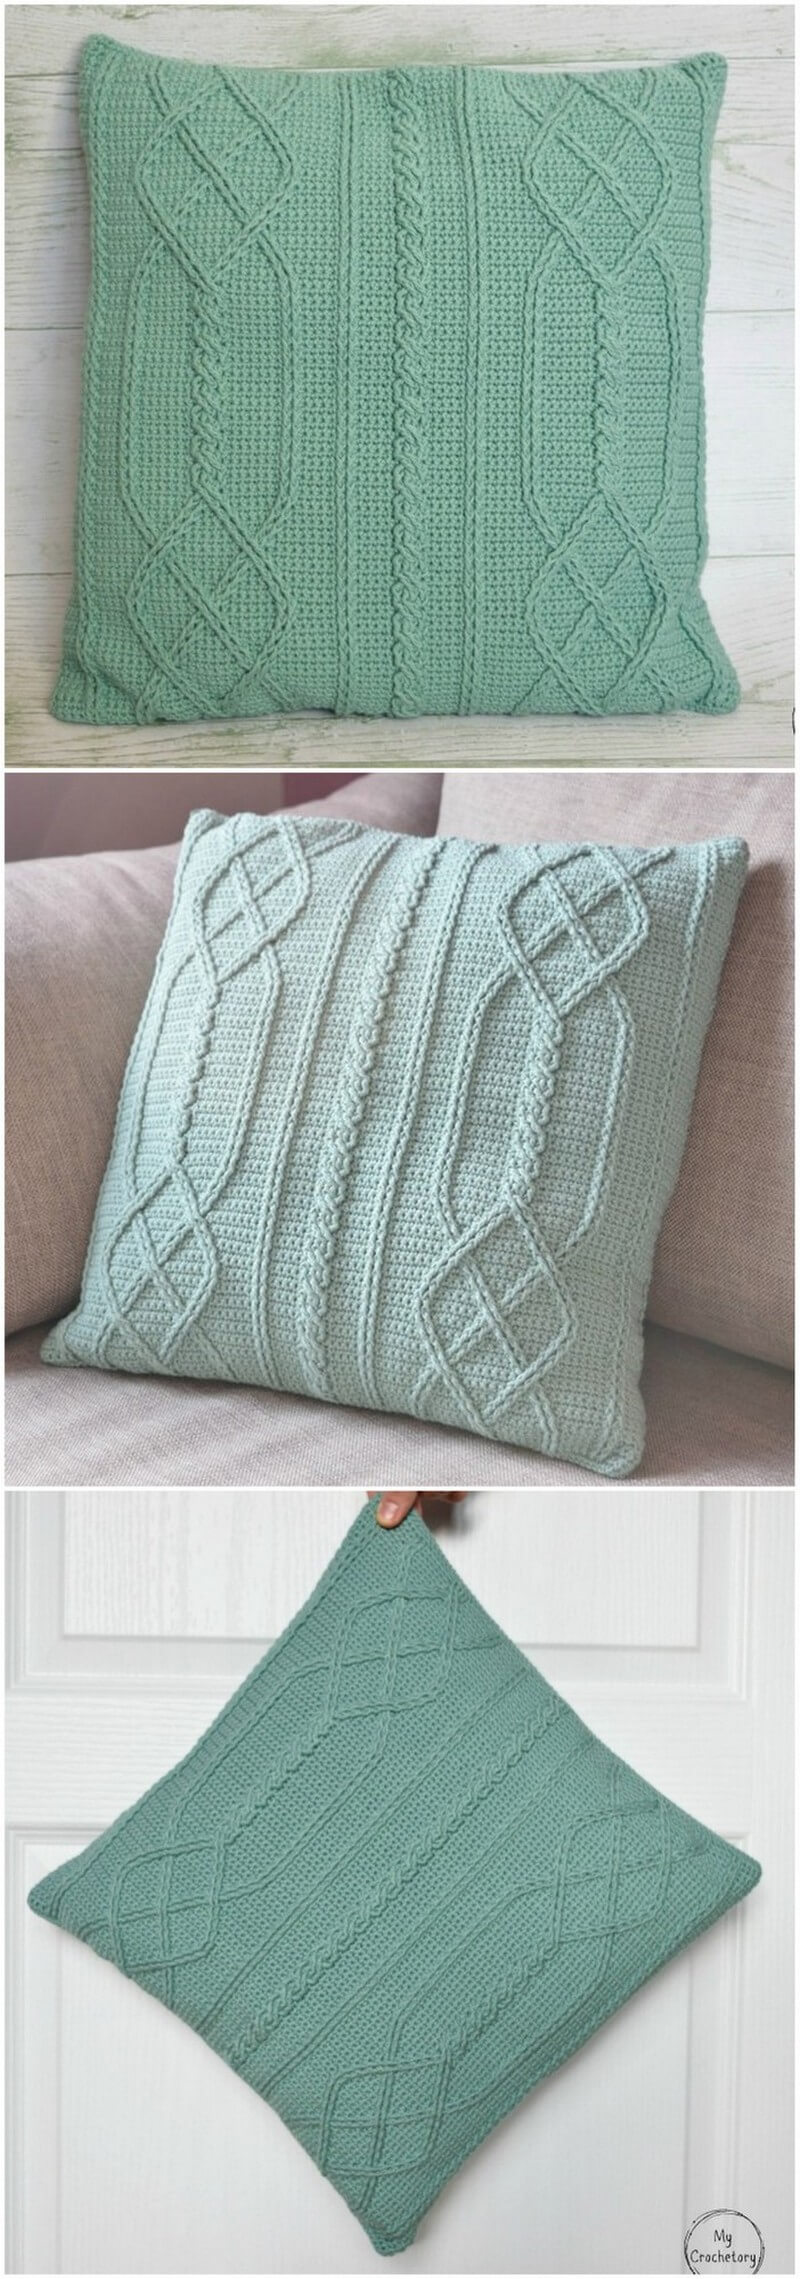 Crochet Pillow Pattern (57)